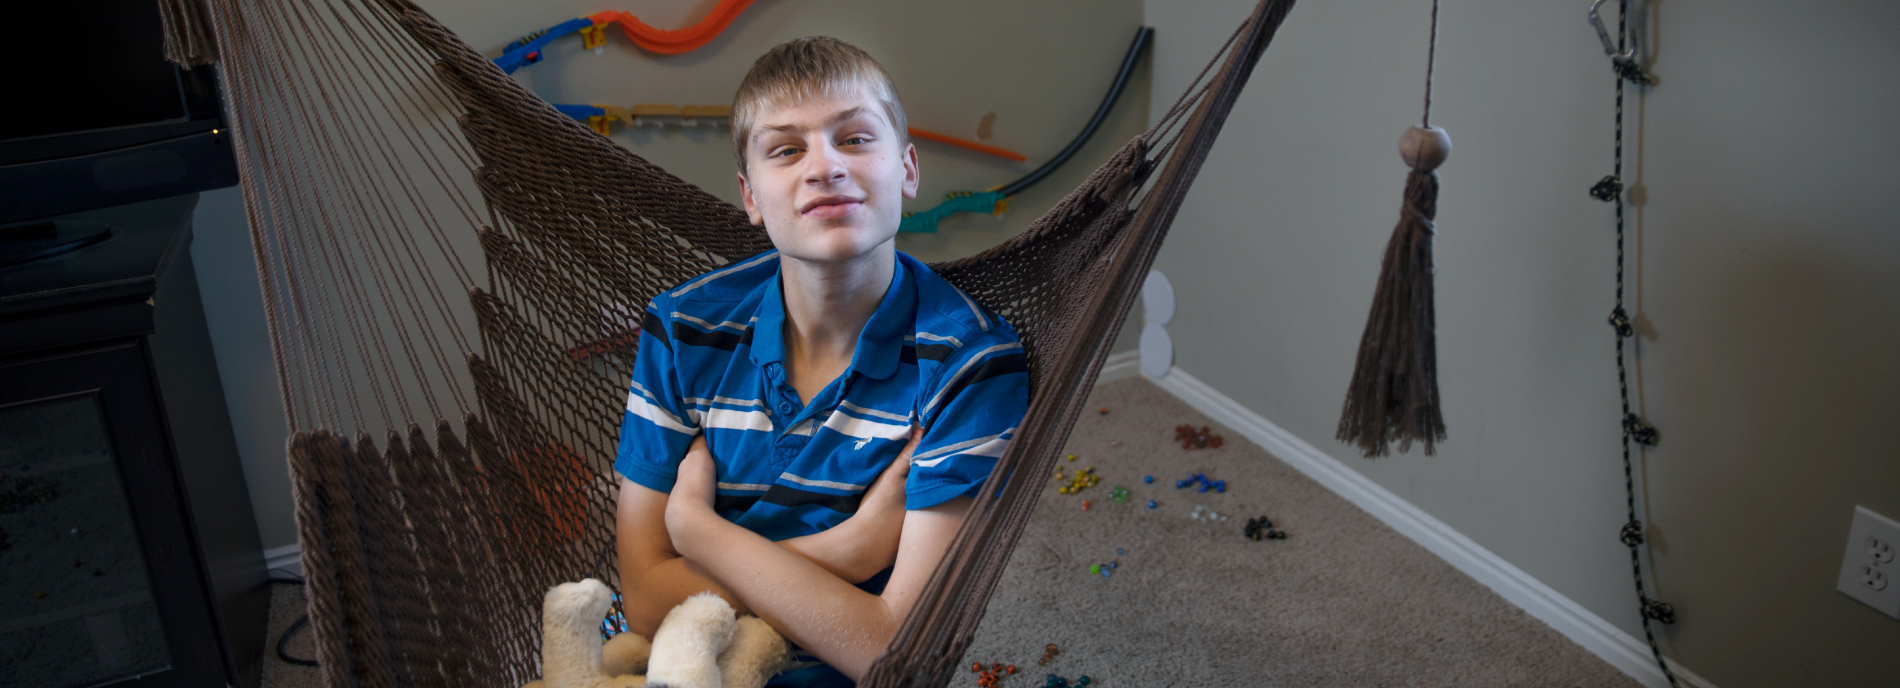 Portrait of boy with autism